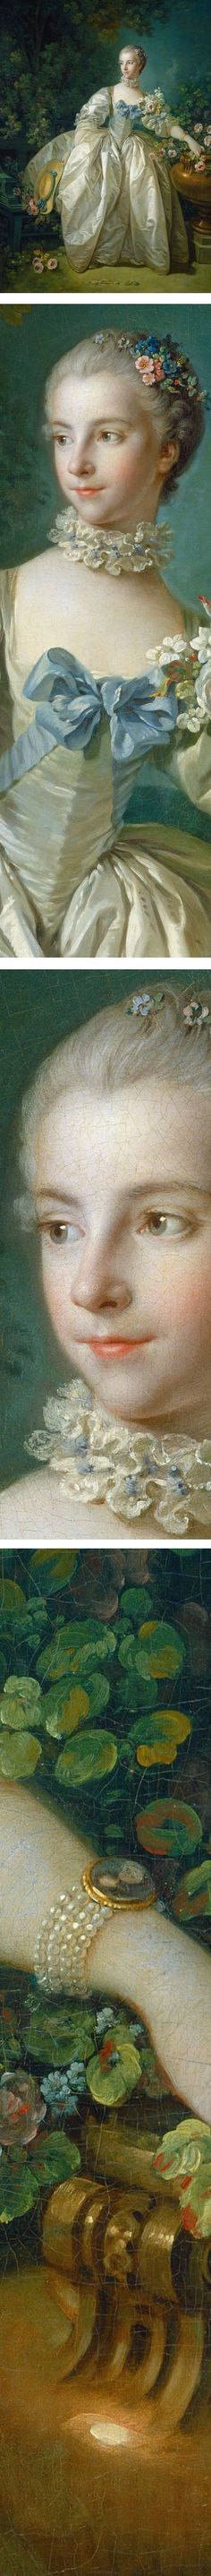 Eye Candy for Today: Boucher's Madame Bergeret